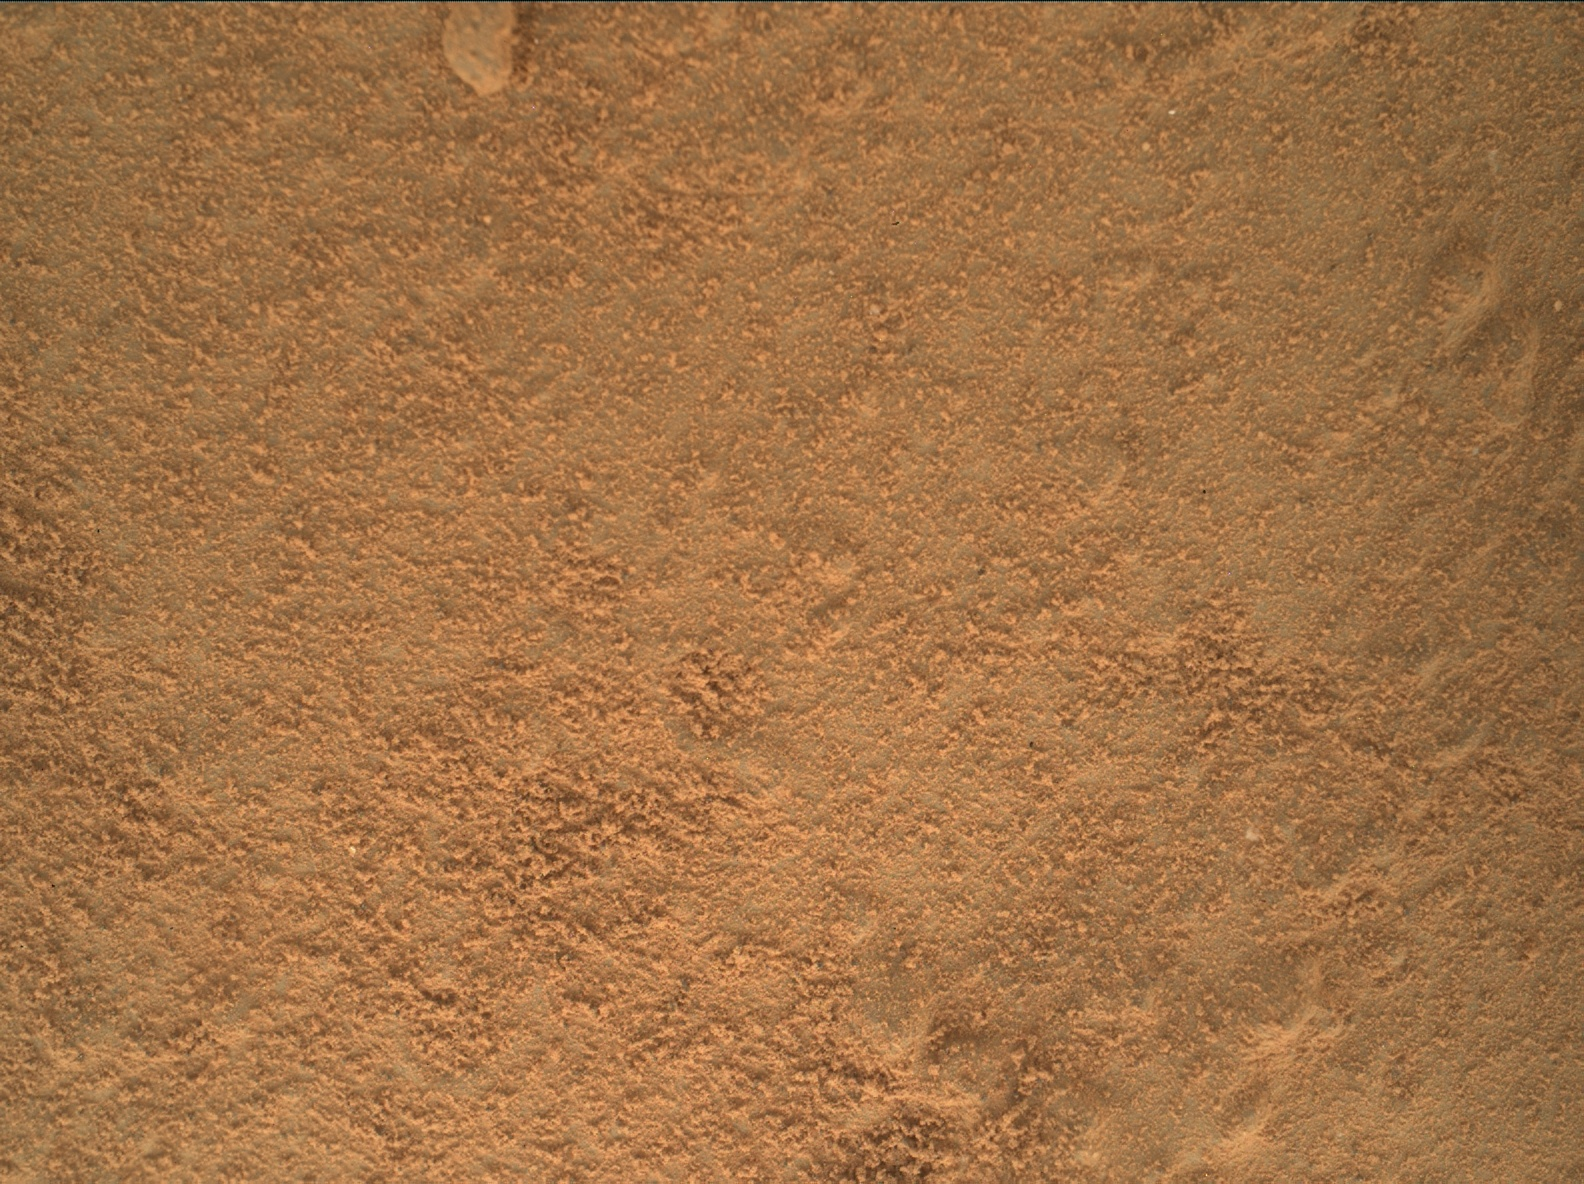 Nasa's Mars rover Curiosity acquired this image using its Mars Hand Lens Imager (MAHLI) on Sol 168